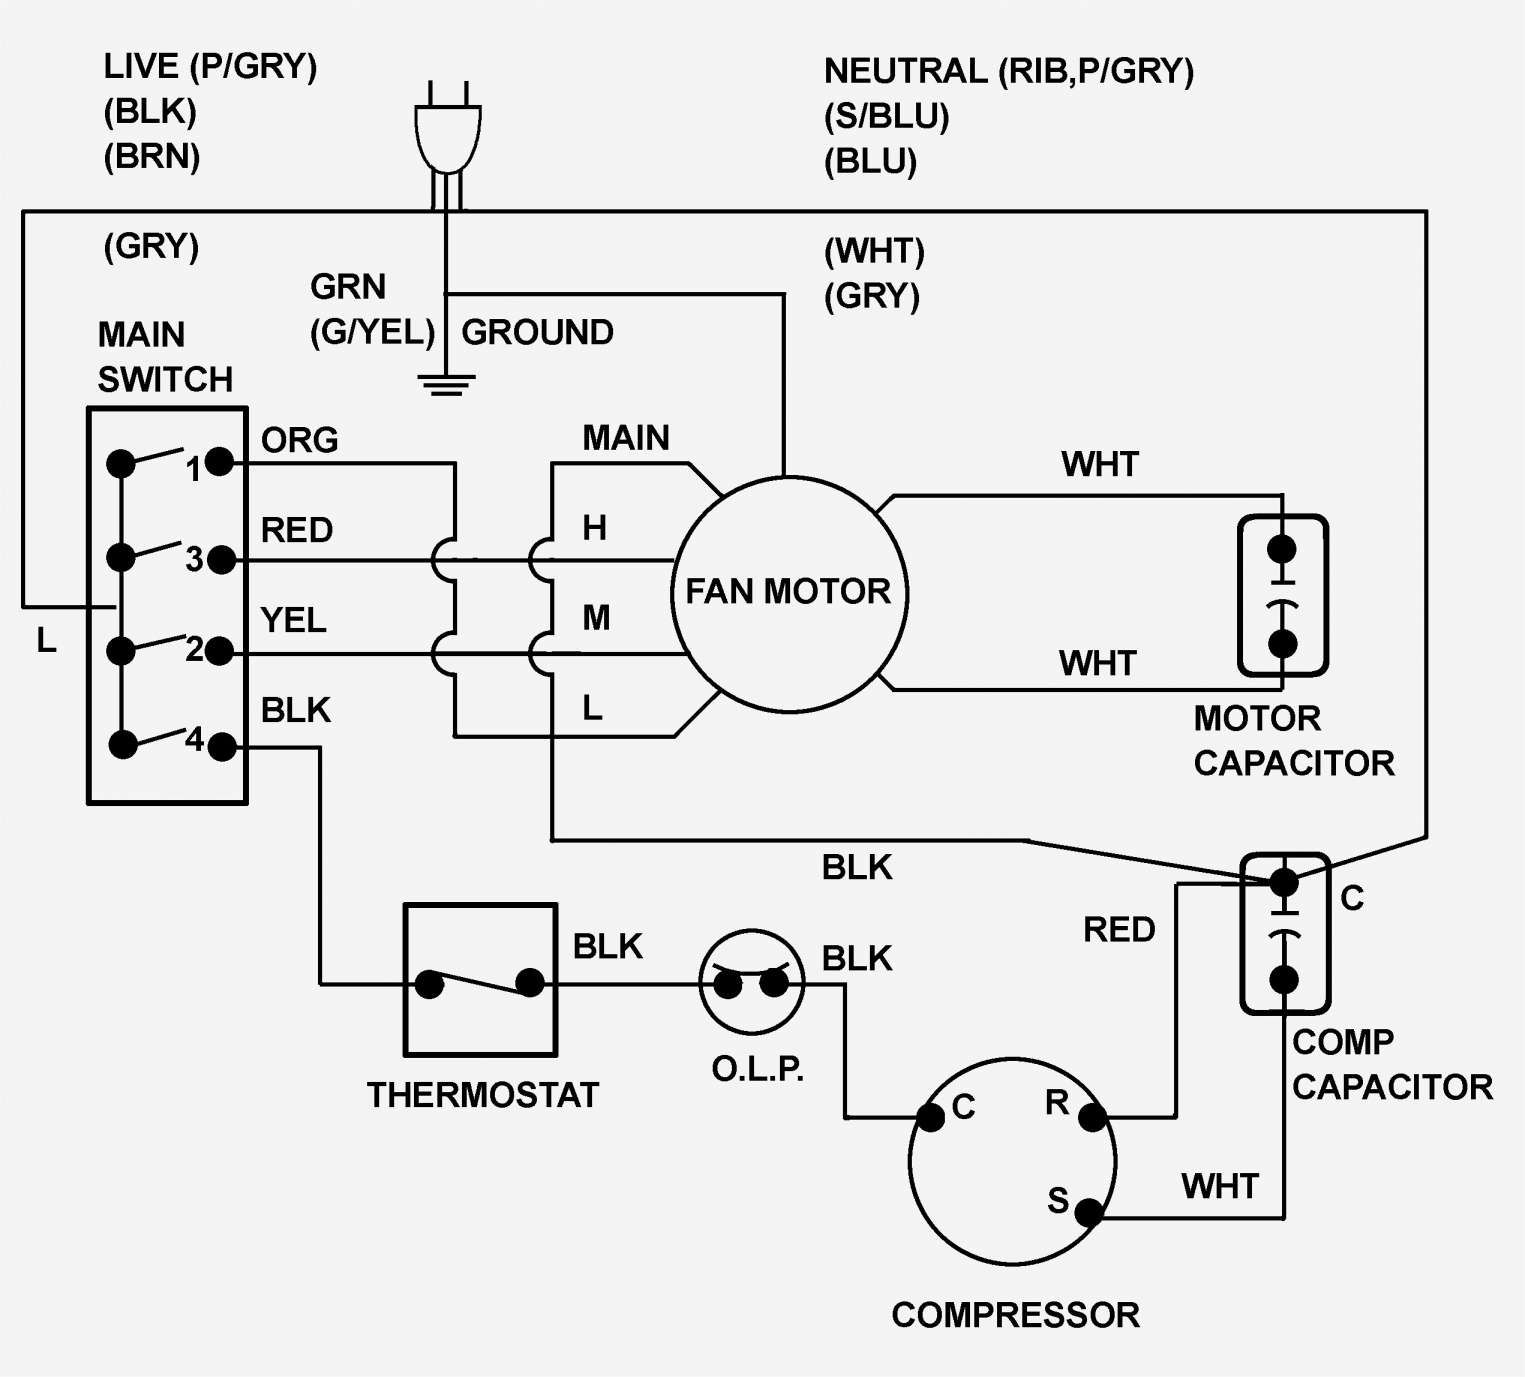 [DIAGRAM_38DE]  Ge Electric Motor Wiring Diagram and Ge Ac Wiring Diagram - Wiring Diagram  in 2020 | Thermostat wiring, Electrical circuit diagram, Circuit diagram | Gm Blower Motor Wiring Diagram |  | Pinterest